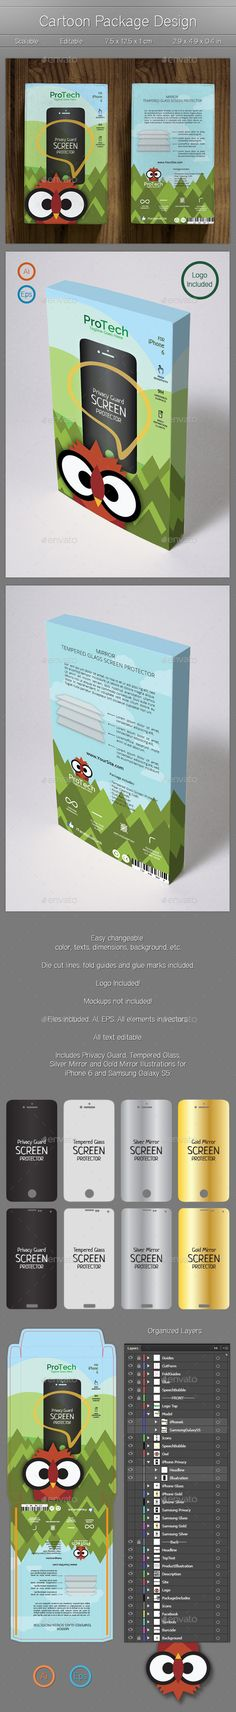 blue, box, cartoon, cartoony, color, colorful, cut, cute, design, die cut, editable, forest, glass, green, illustration, inviting, logo, modern, owl, phone, product, red, simple, template, vector, vivid, print-templates, packaging Cartoon Package Design General – Multipurpose Box Design Template. Very organised and named layers, fully editable. Easy changeable color, texts, illustrations, etc. Logo included ! Files included: .ai .eps Free Google fonts used: Raleway: https://www.google.com...